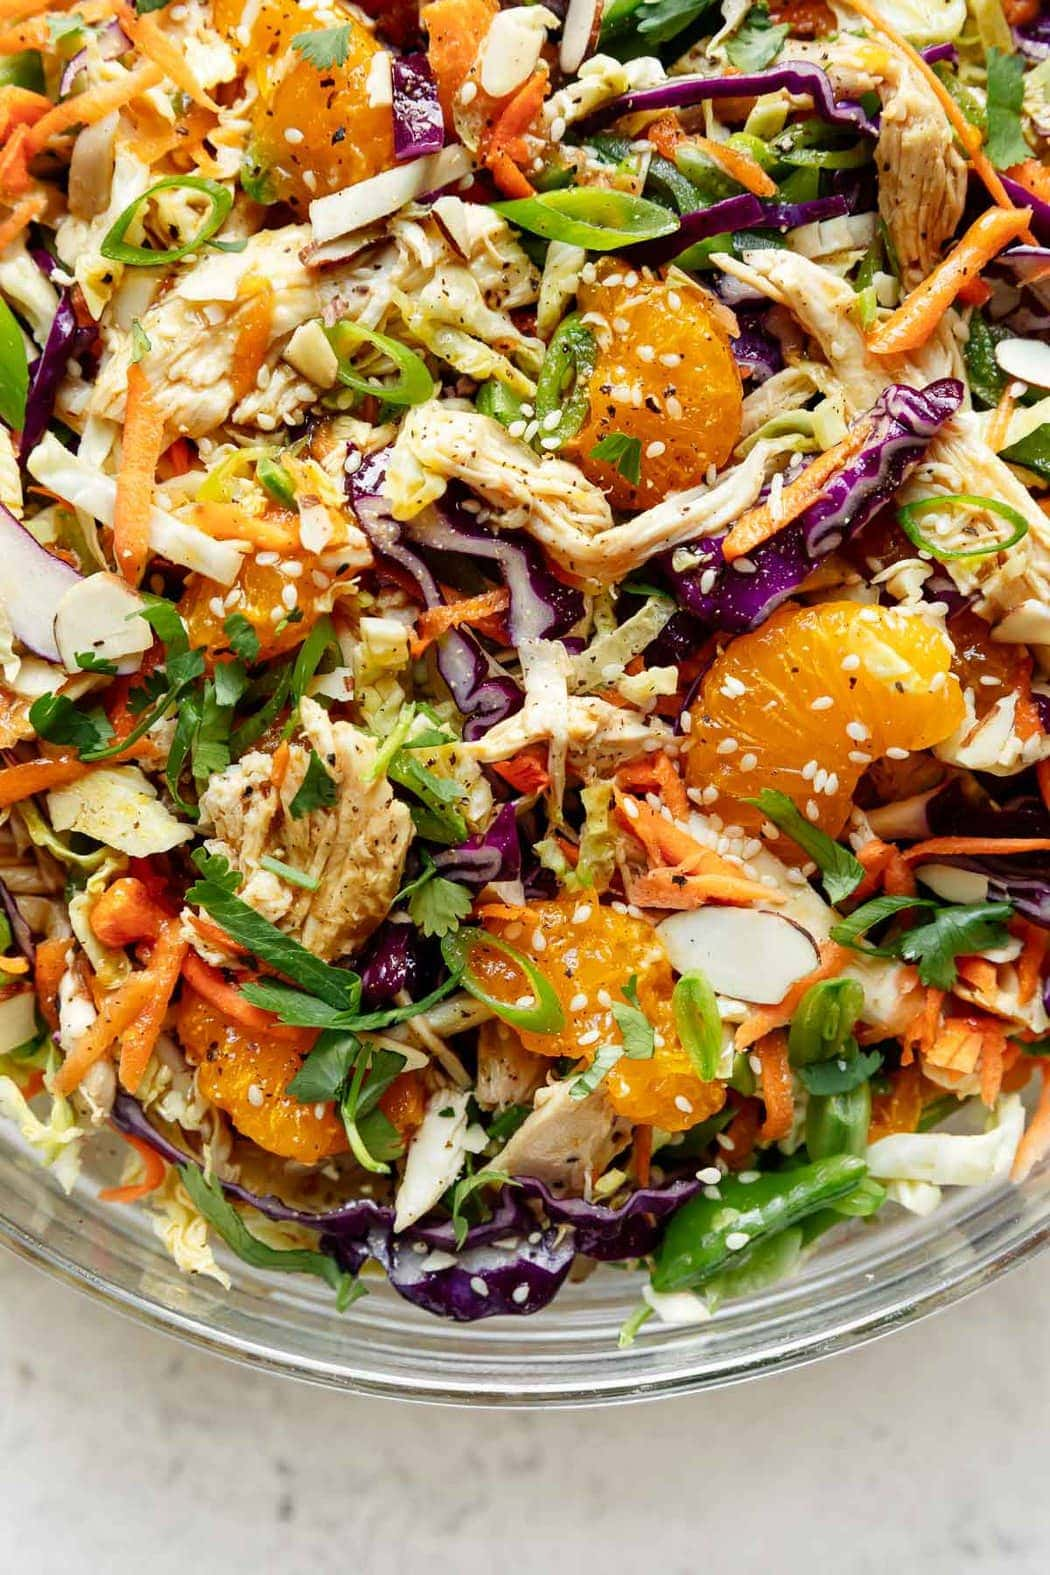 A close up view of Chinese-inspired chicken salad with shredded chicken, shredded cabbage, snap peas, and toasted almonds in a serving bowl